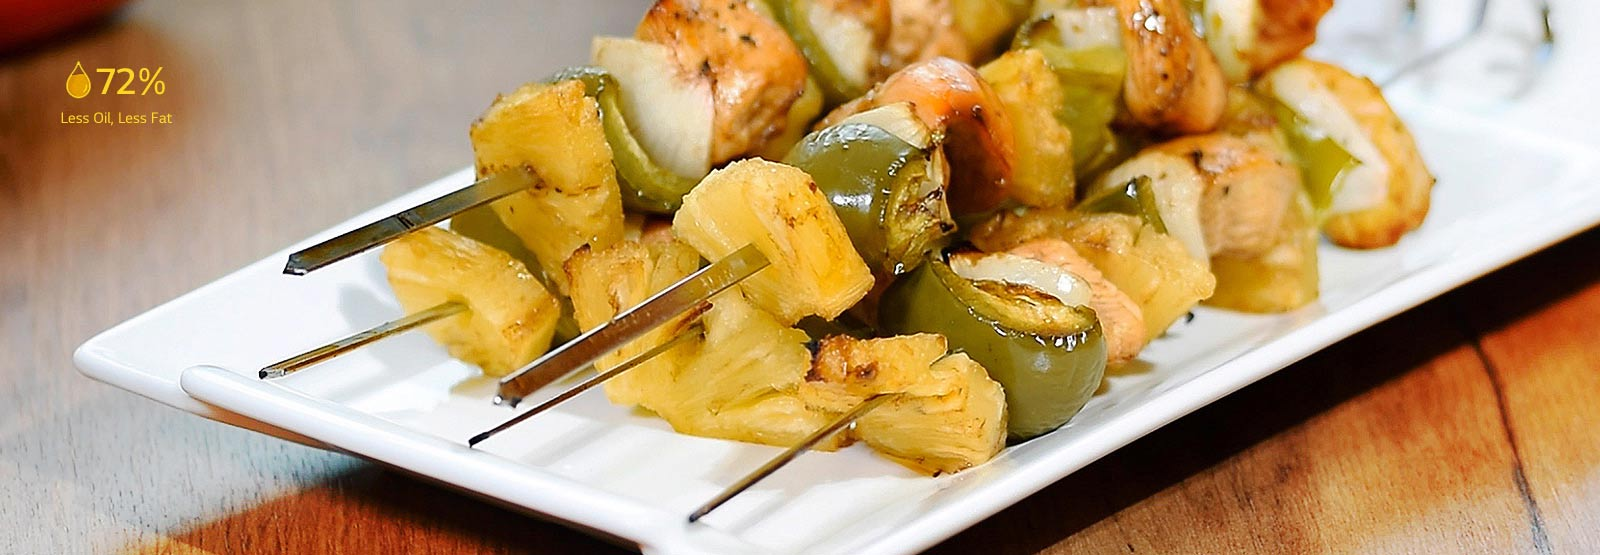 Image of skewered dishes made of various vegetables